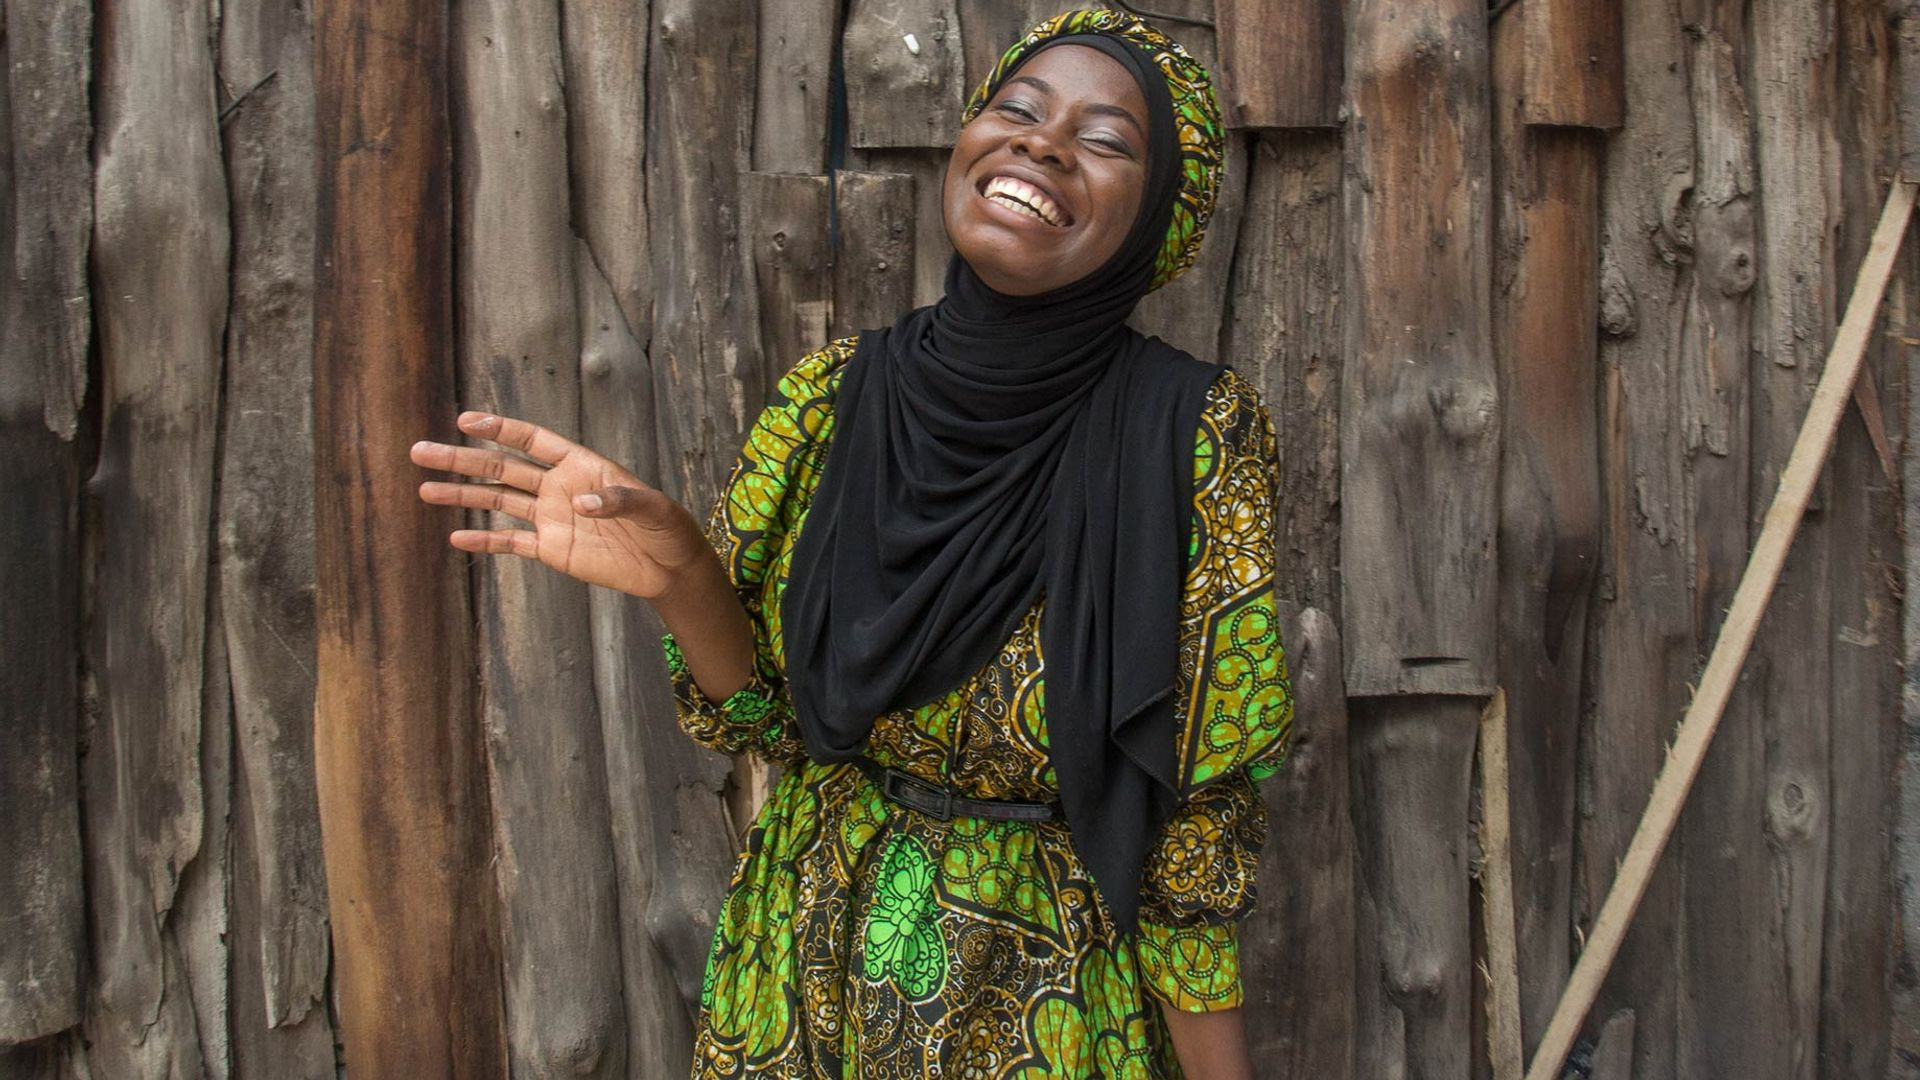 A woman standing beside a wooden fence and smiling